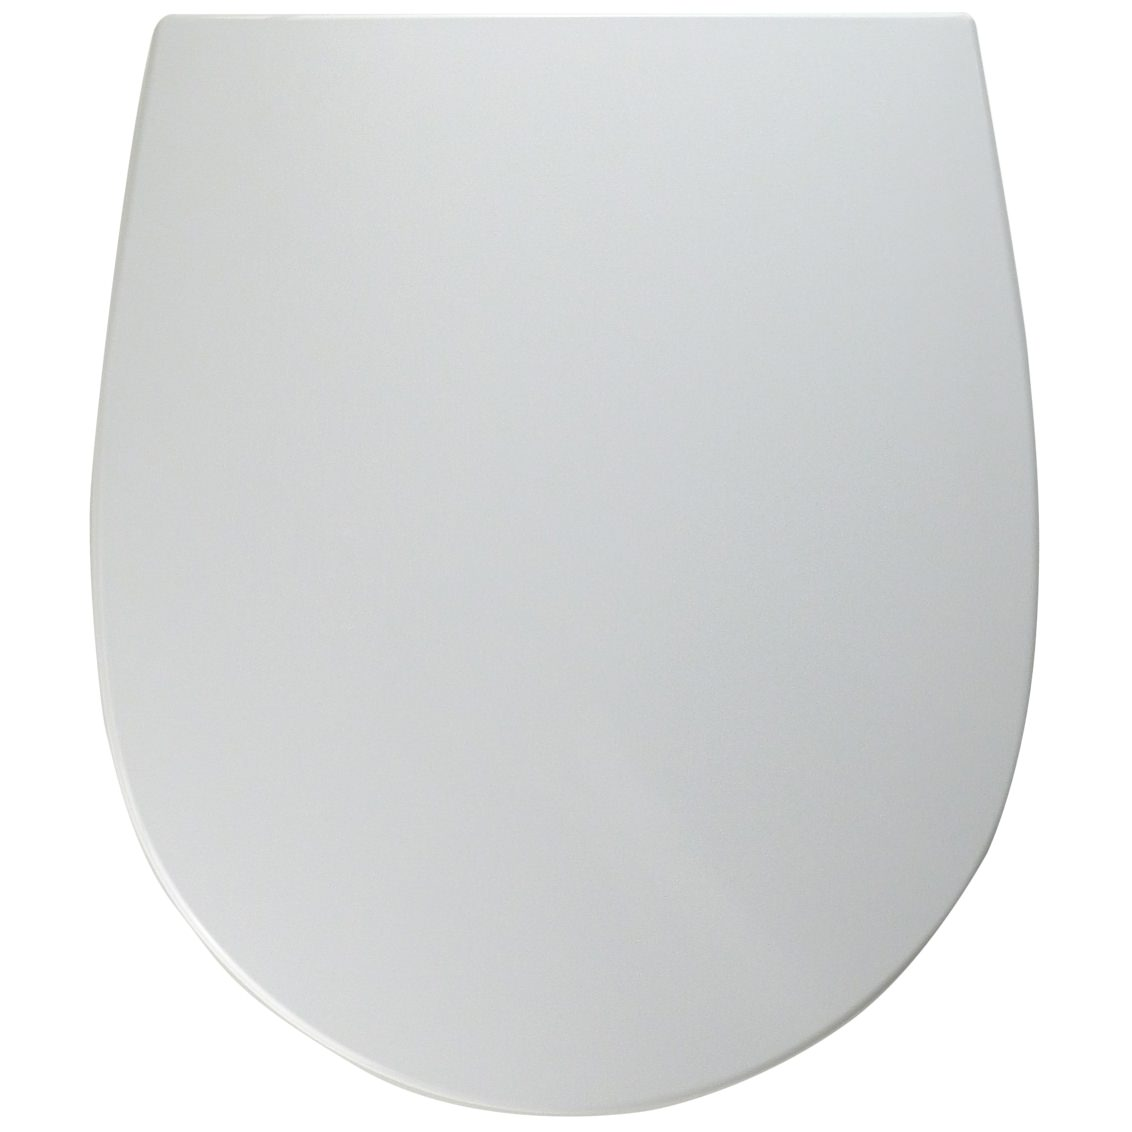 Terrific Twyford Visit Toilet Seat And Cover Gmtry Best Dining Table And Chair Ideas Images Gmtryco